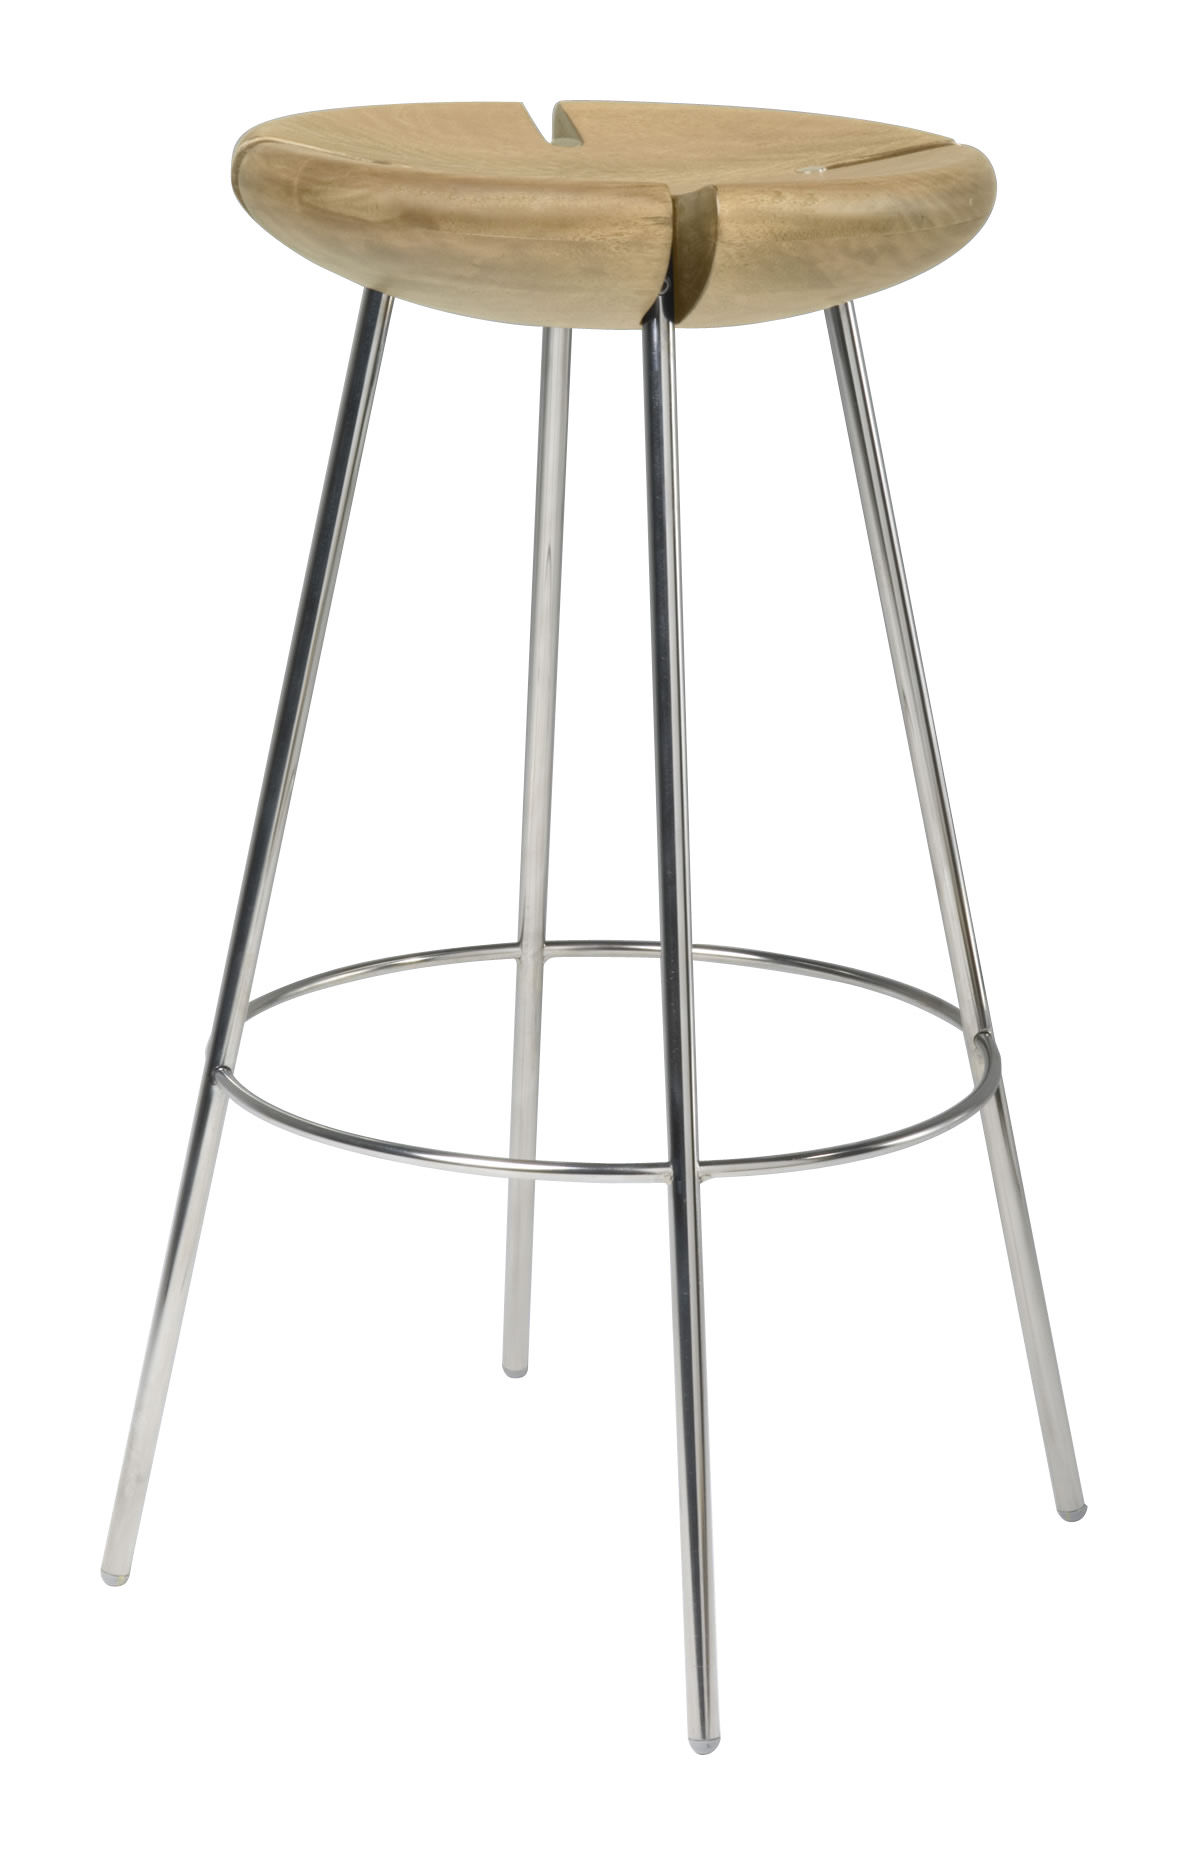 Furniture - Bar Stools - Tribo Bar stool - H 76 cm - Wood & metal legs by Objekto - solid oak with natural finish / Polished stainless steel structu - Acier inoxydable poli recyclé, Oak